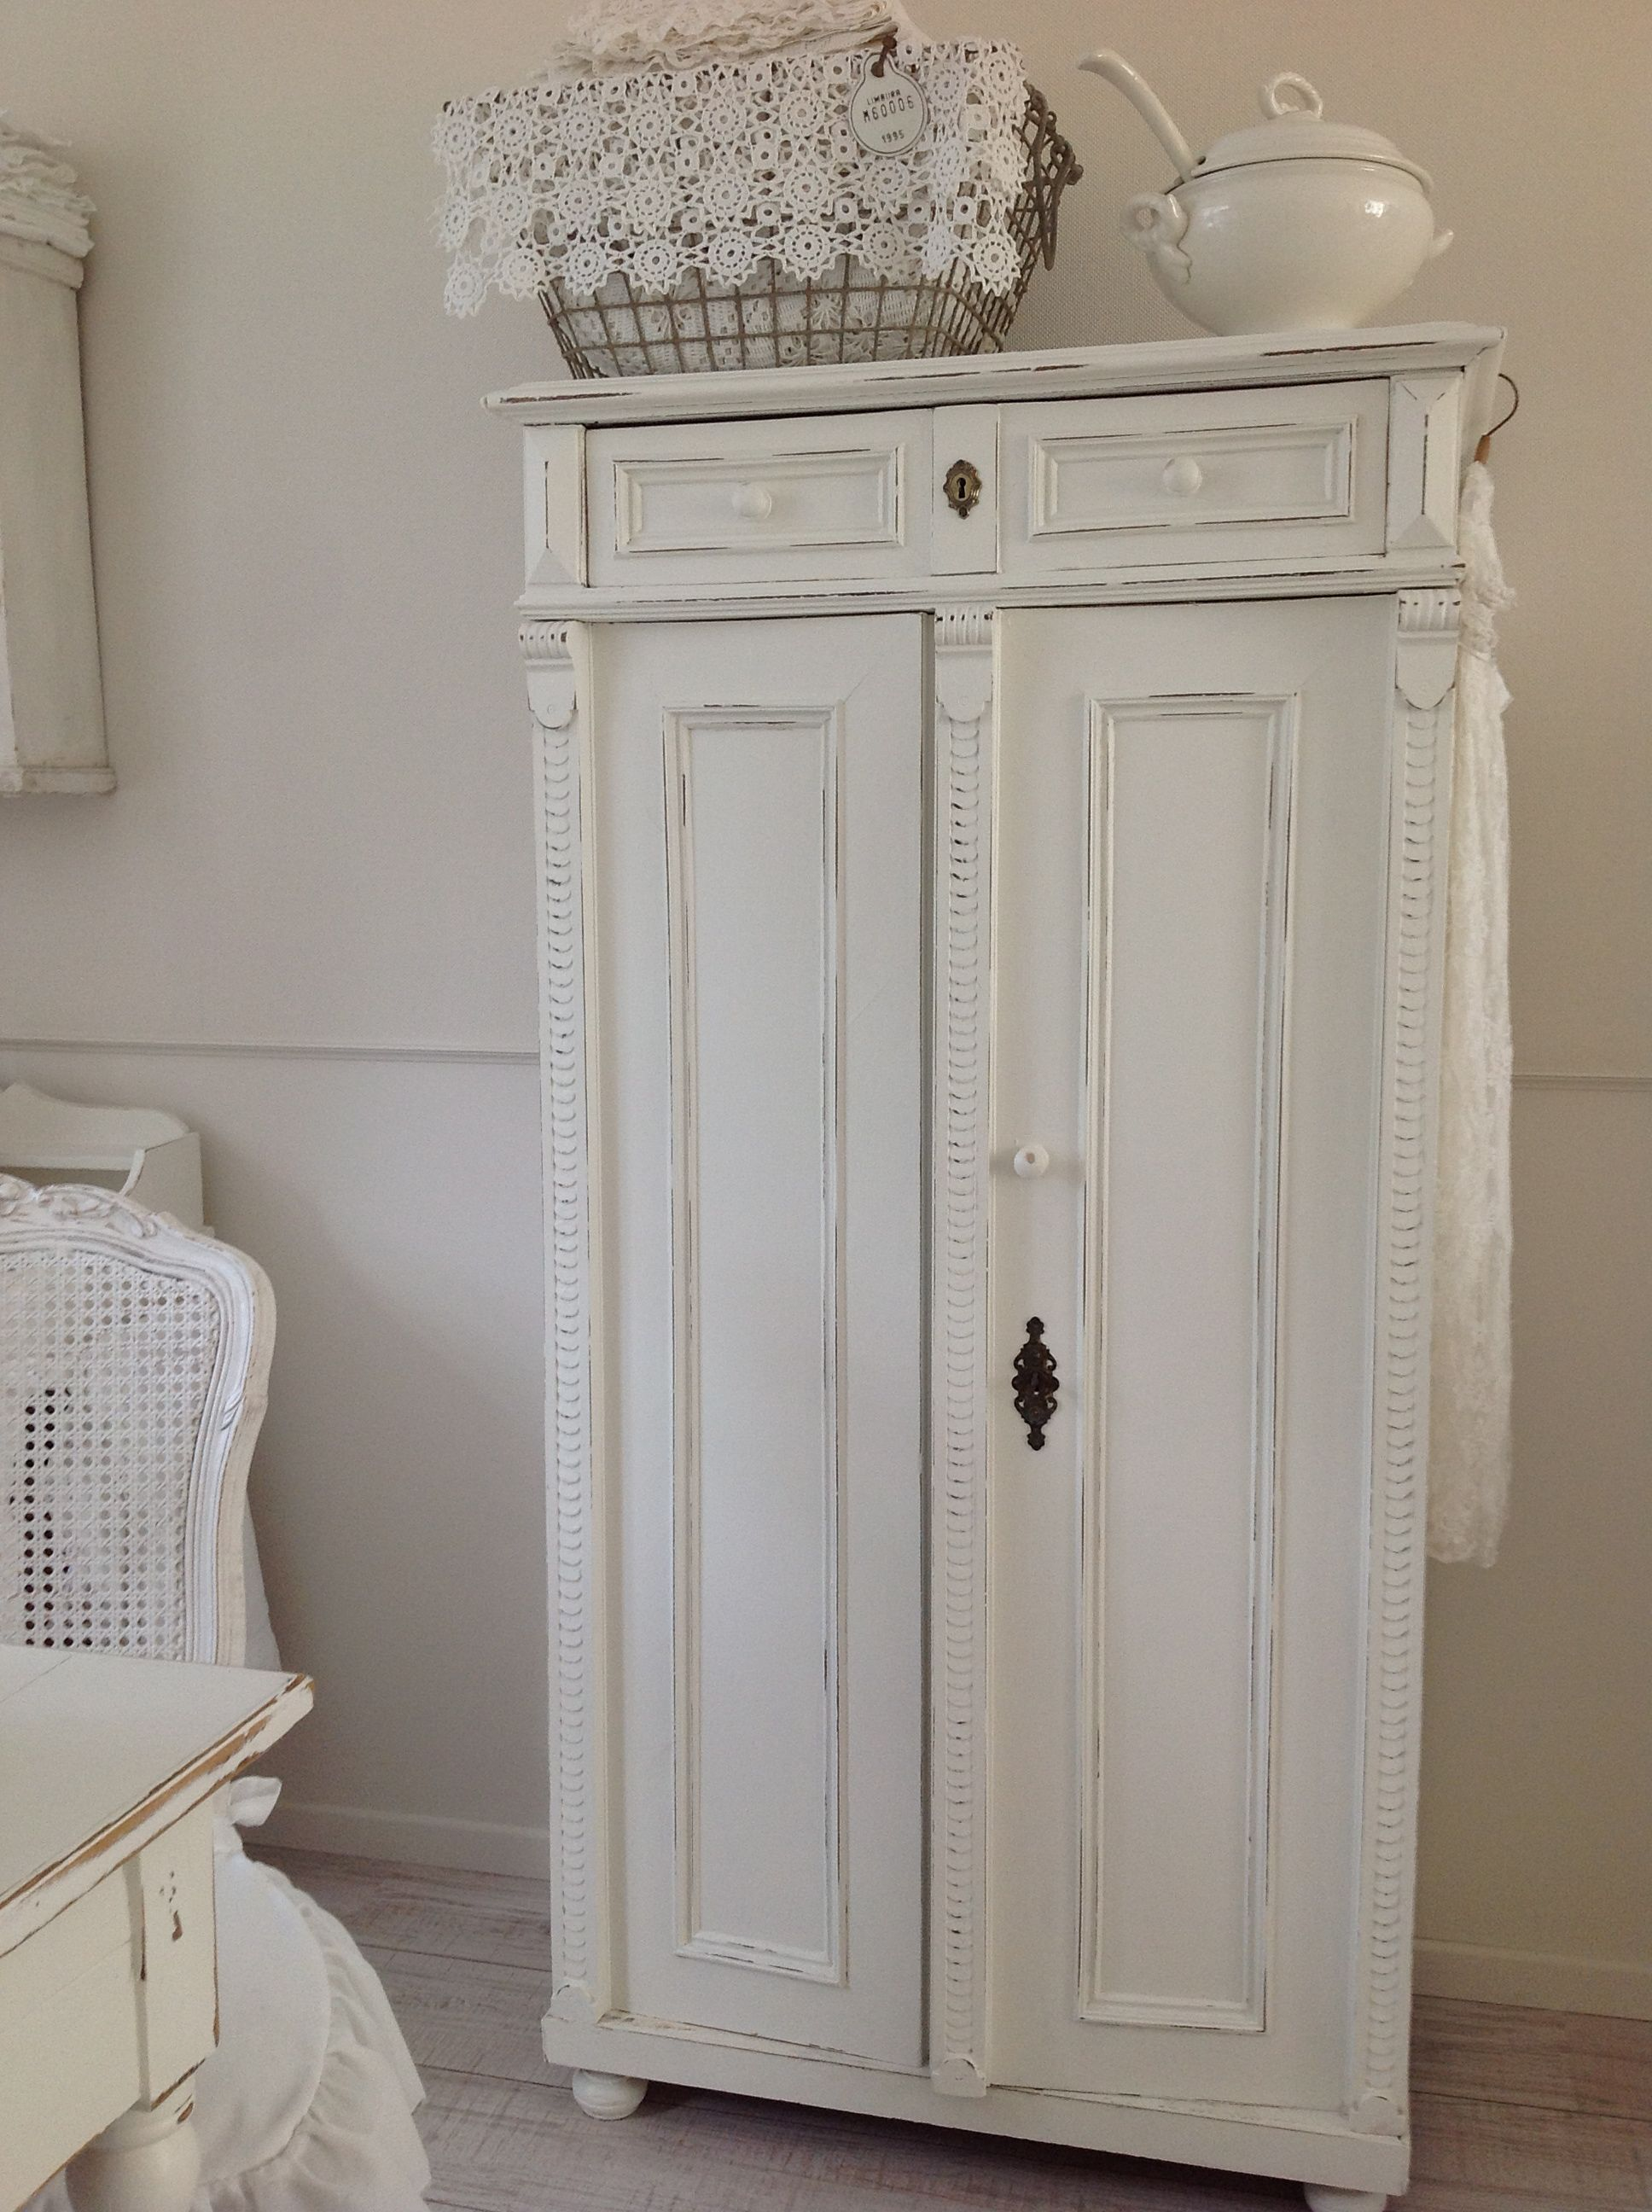 shabby chic cabinets on pinterest armoires cupboards and shabby chic. Black Bedroom Furniture Sets. Home Design Ideas